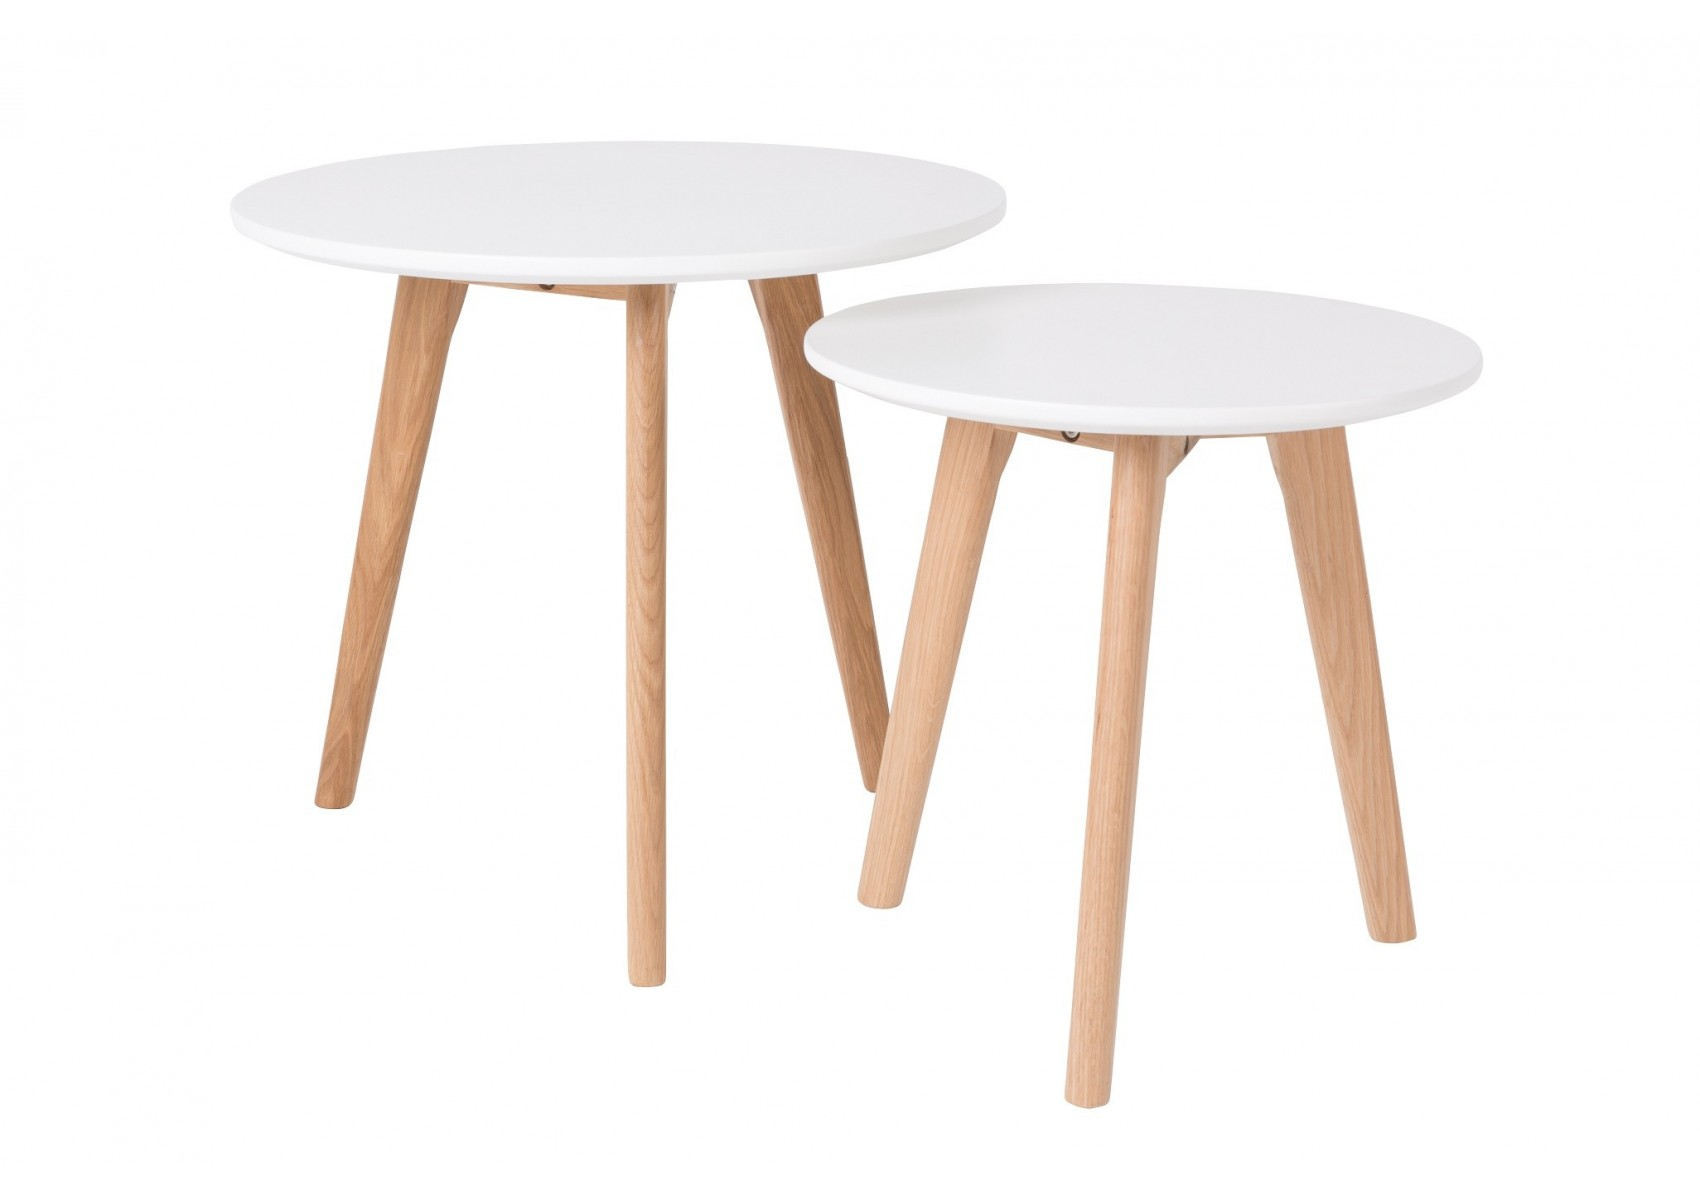 Tables basses scandinave bodine set de 2 boite design for Table basse scandinave design